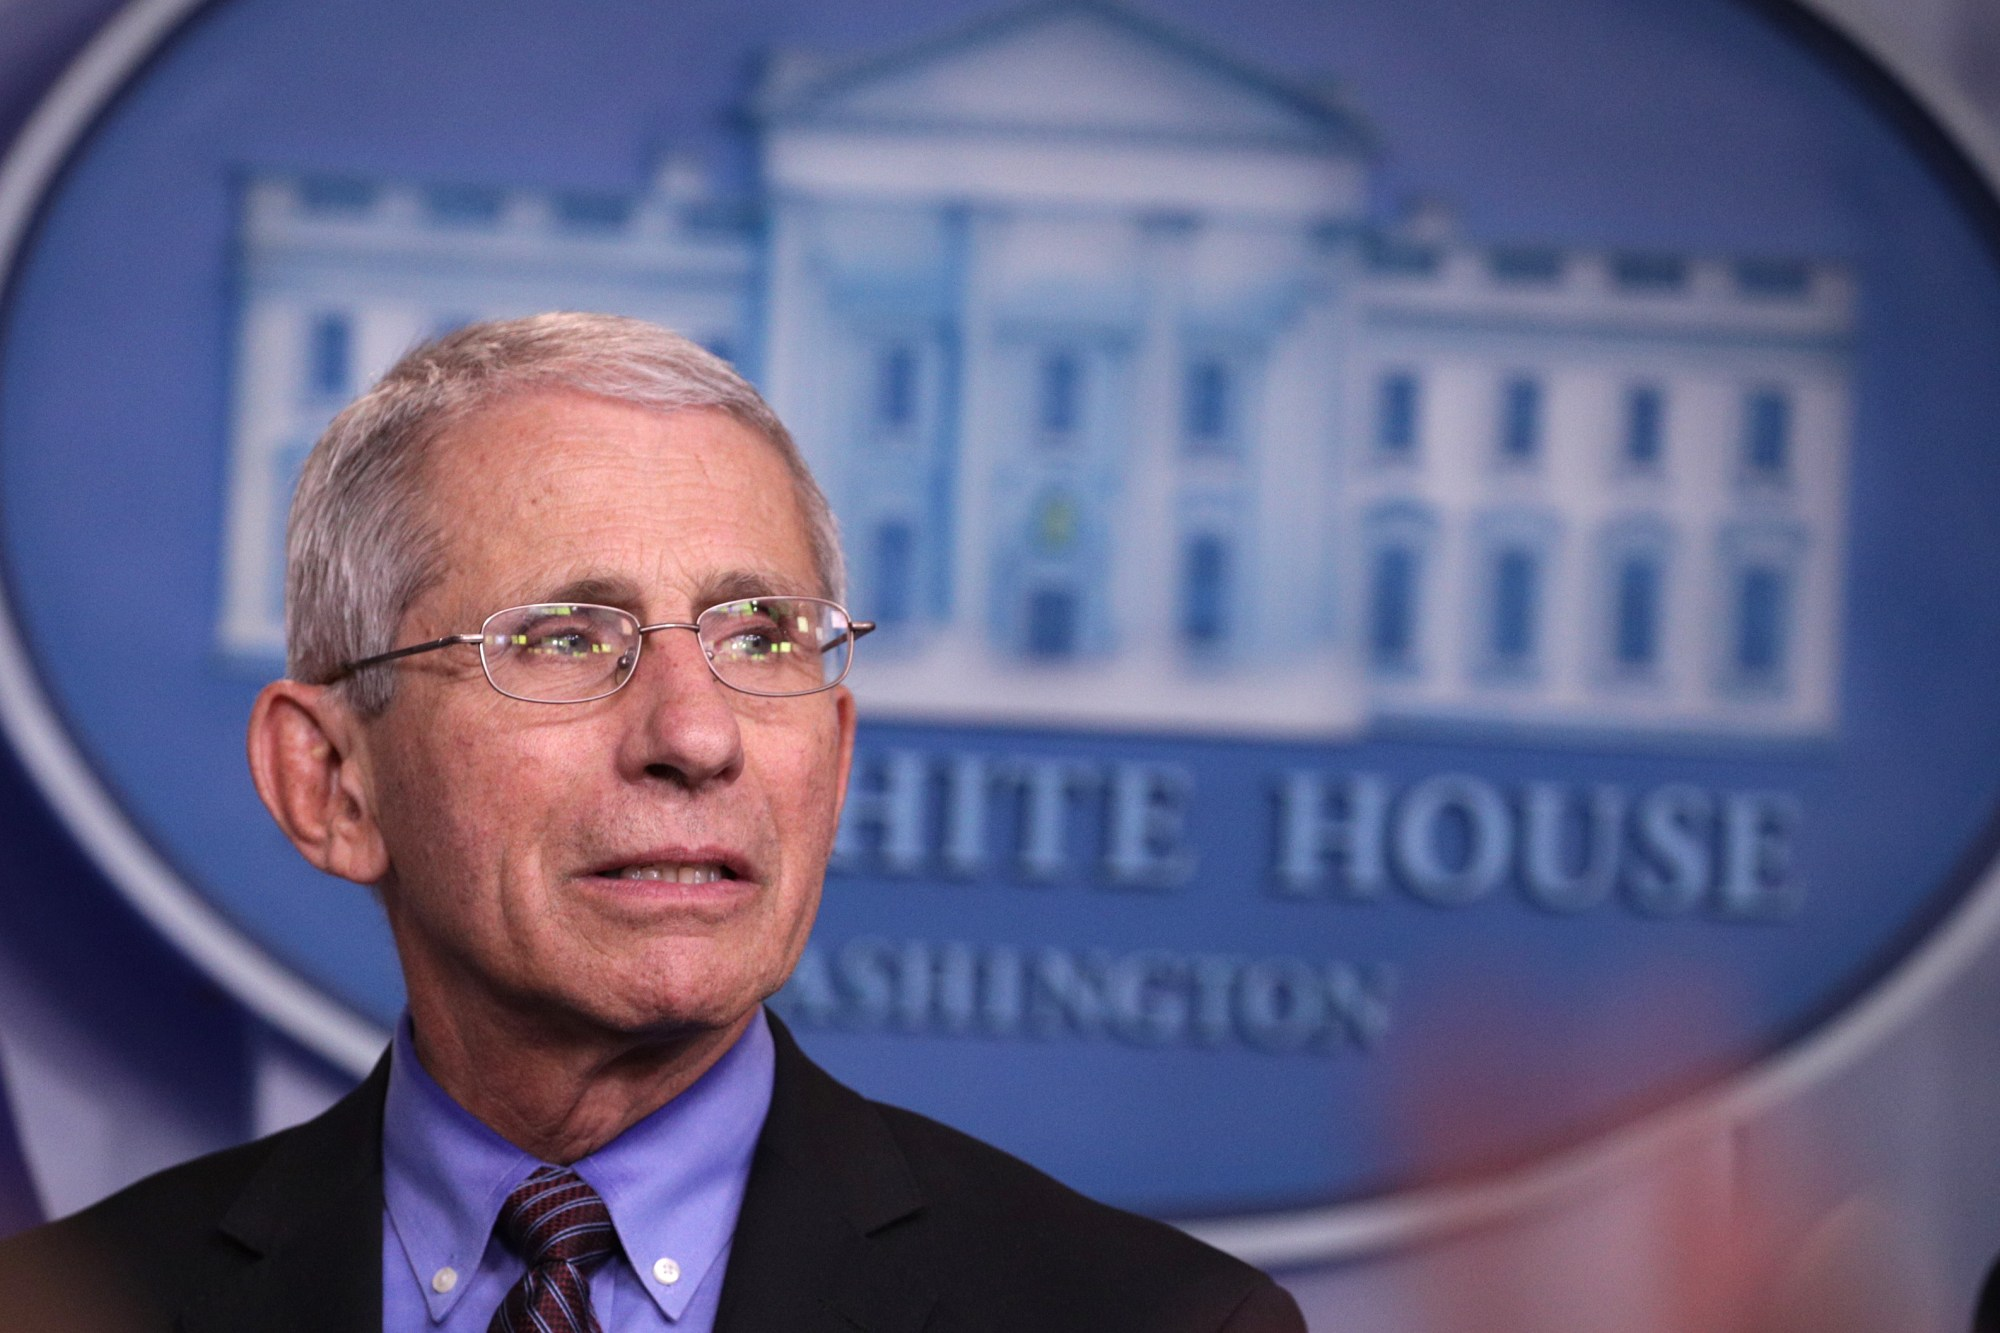 National Institute of Allergy and Infectious Diseases Director Anthony Fauci listens during the daily coronavirus briefing in the Brady Press Briefing Room at the White House on April 09, 2020 in Washington, DC. (Alex Wong/Getty Images)